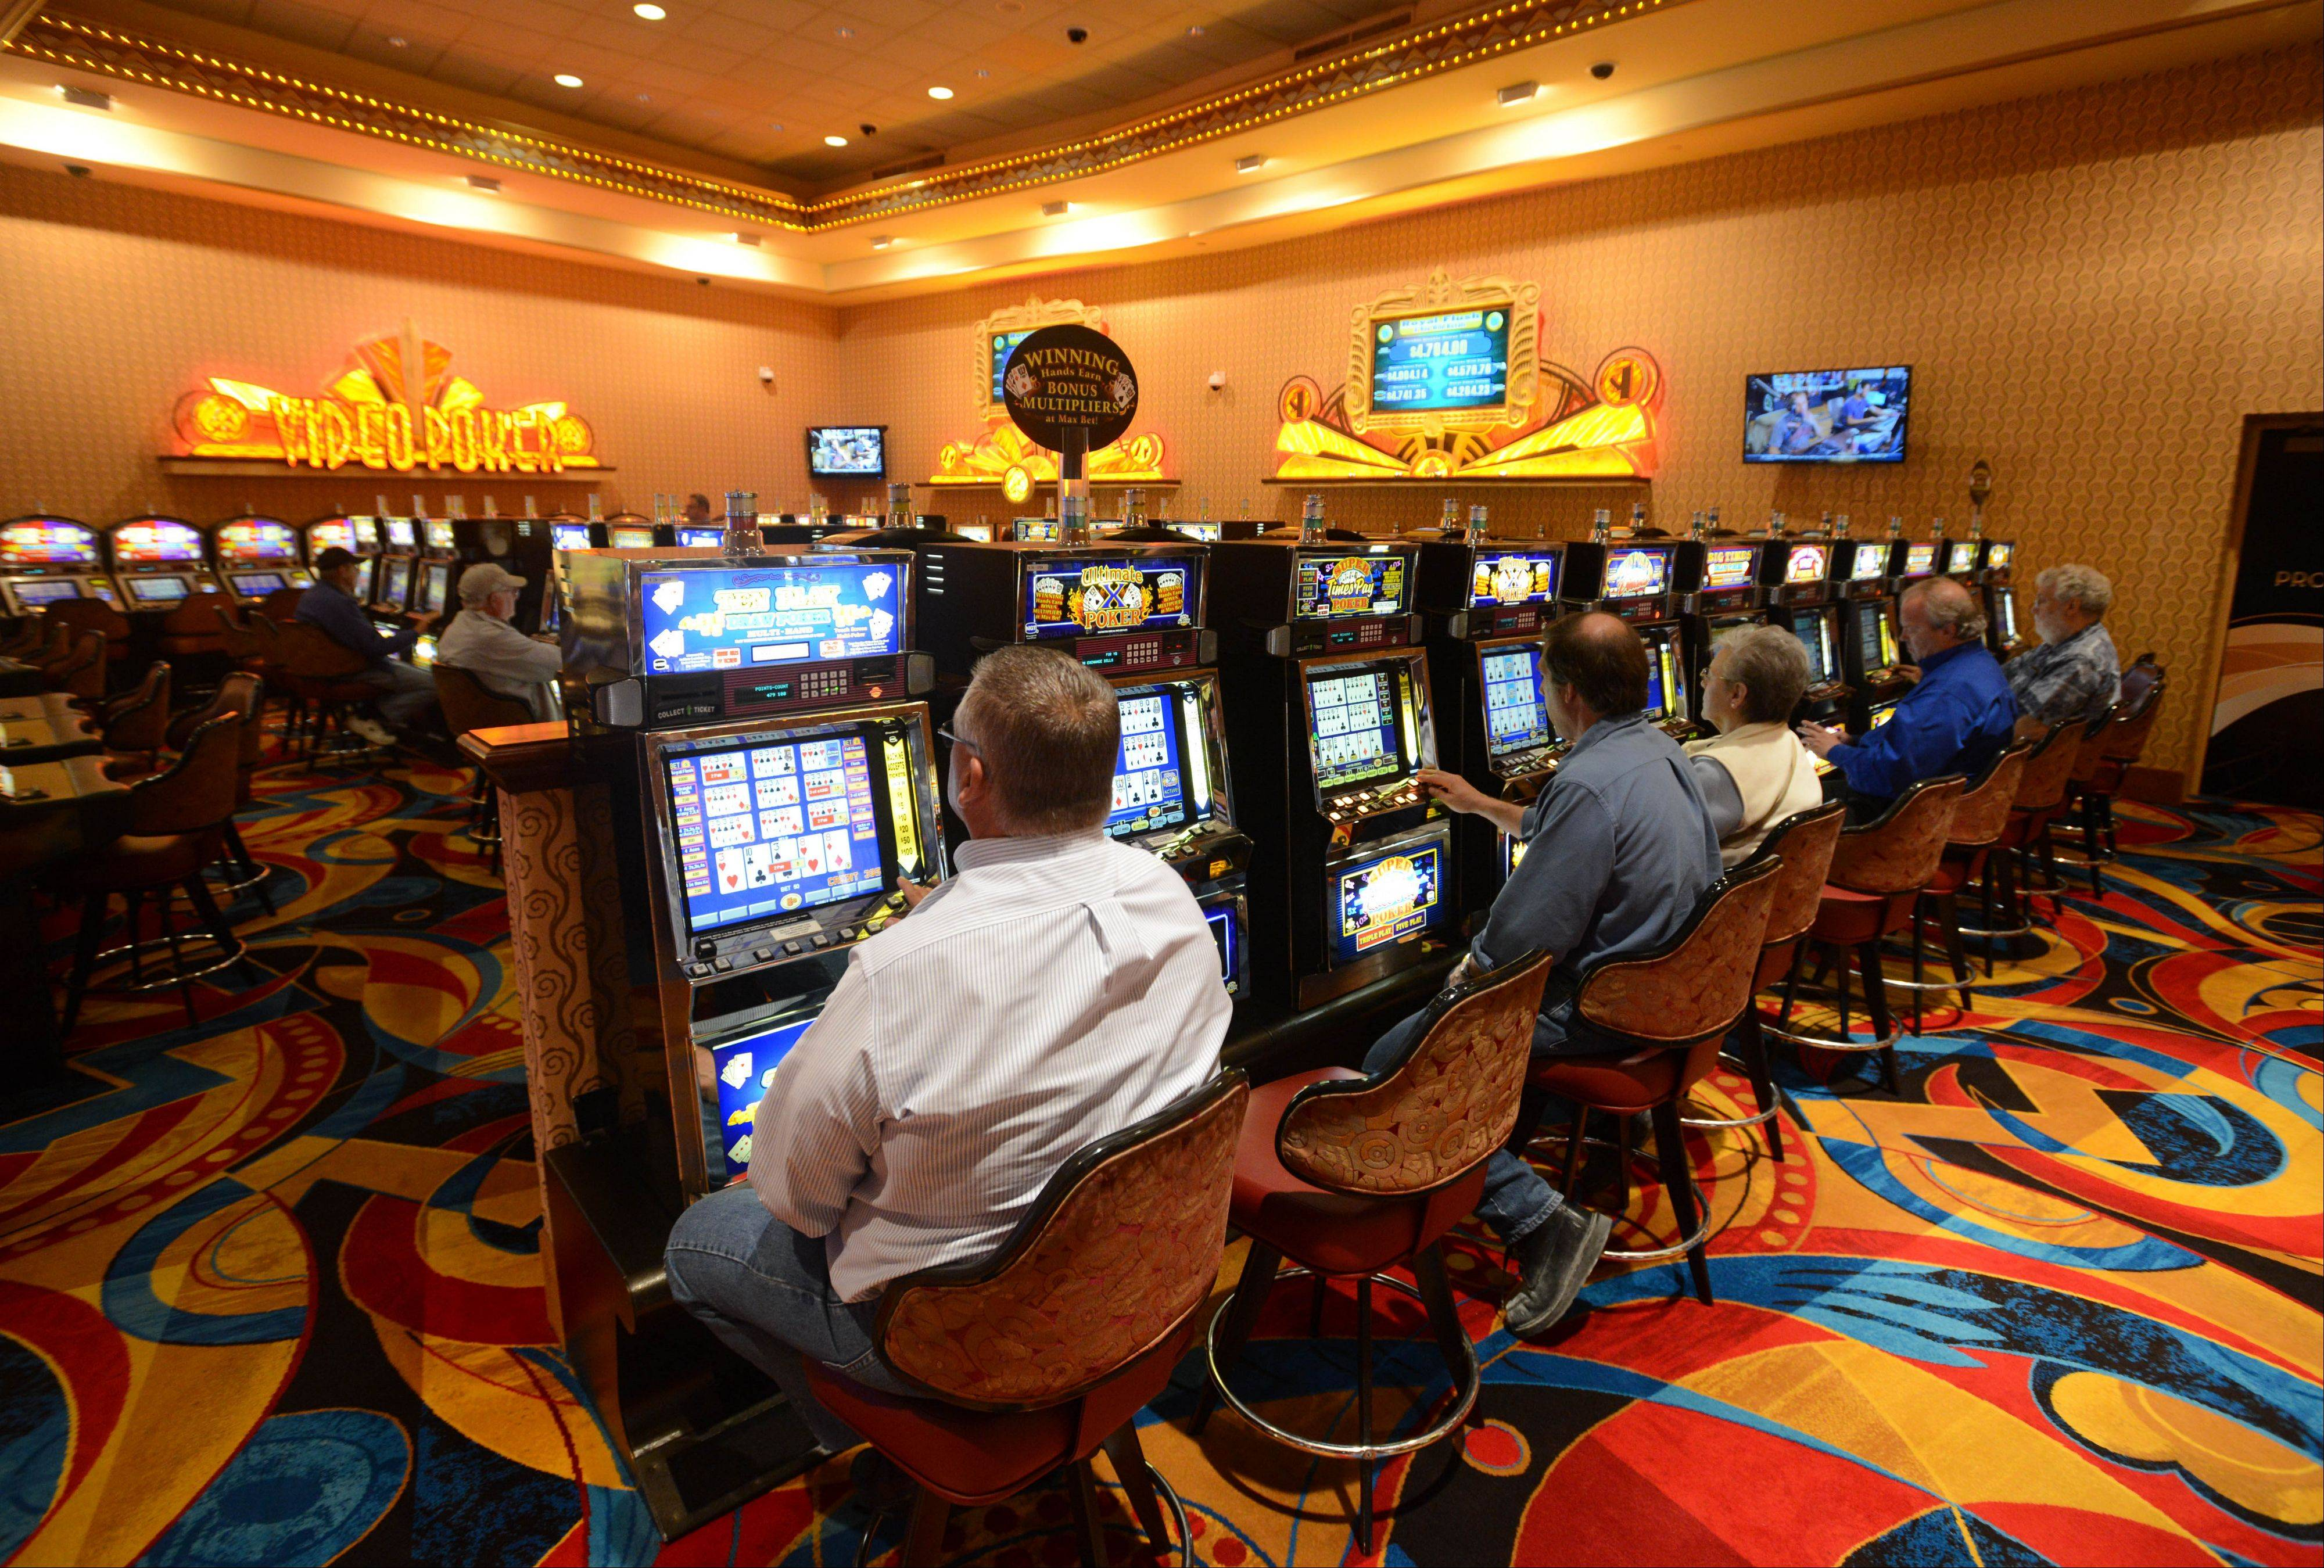 Celebrating its 20th anniversary this month, Hollywood Casino Aurora offers 1,170 slot machines, 26 table games, an entertainment stage, a steakhouse, a buffet and a deli in 53,000 square feet of space.